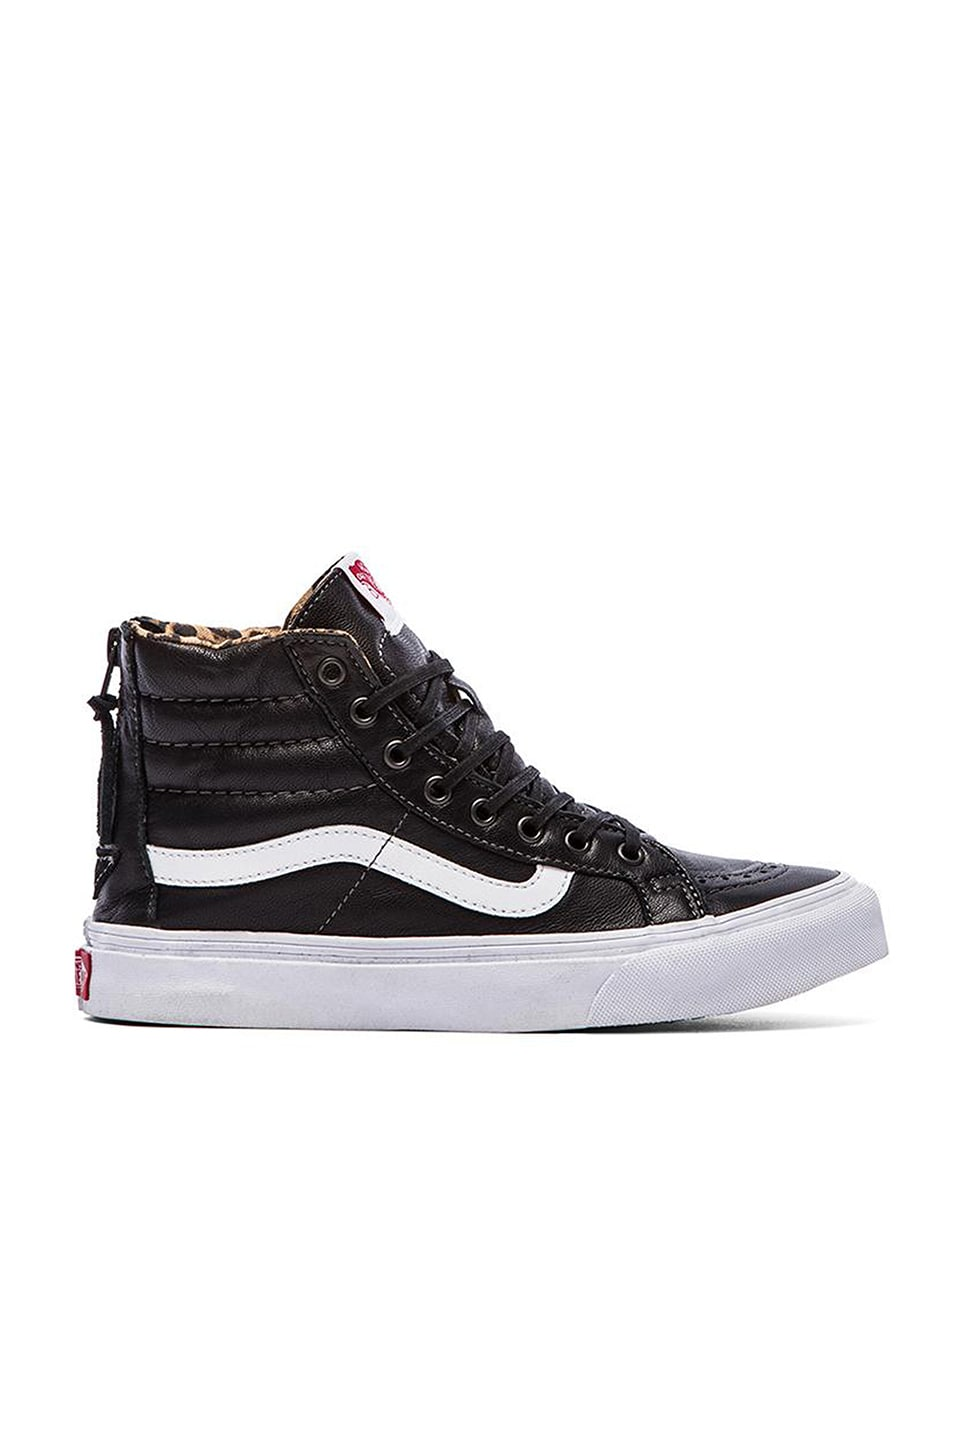 Vans SK8-Hi Slim Zip Sneaker in Black & Leopard